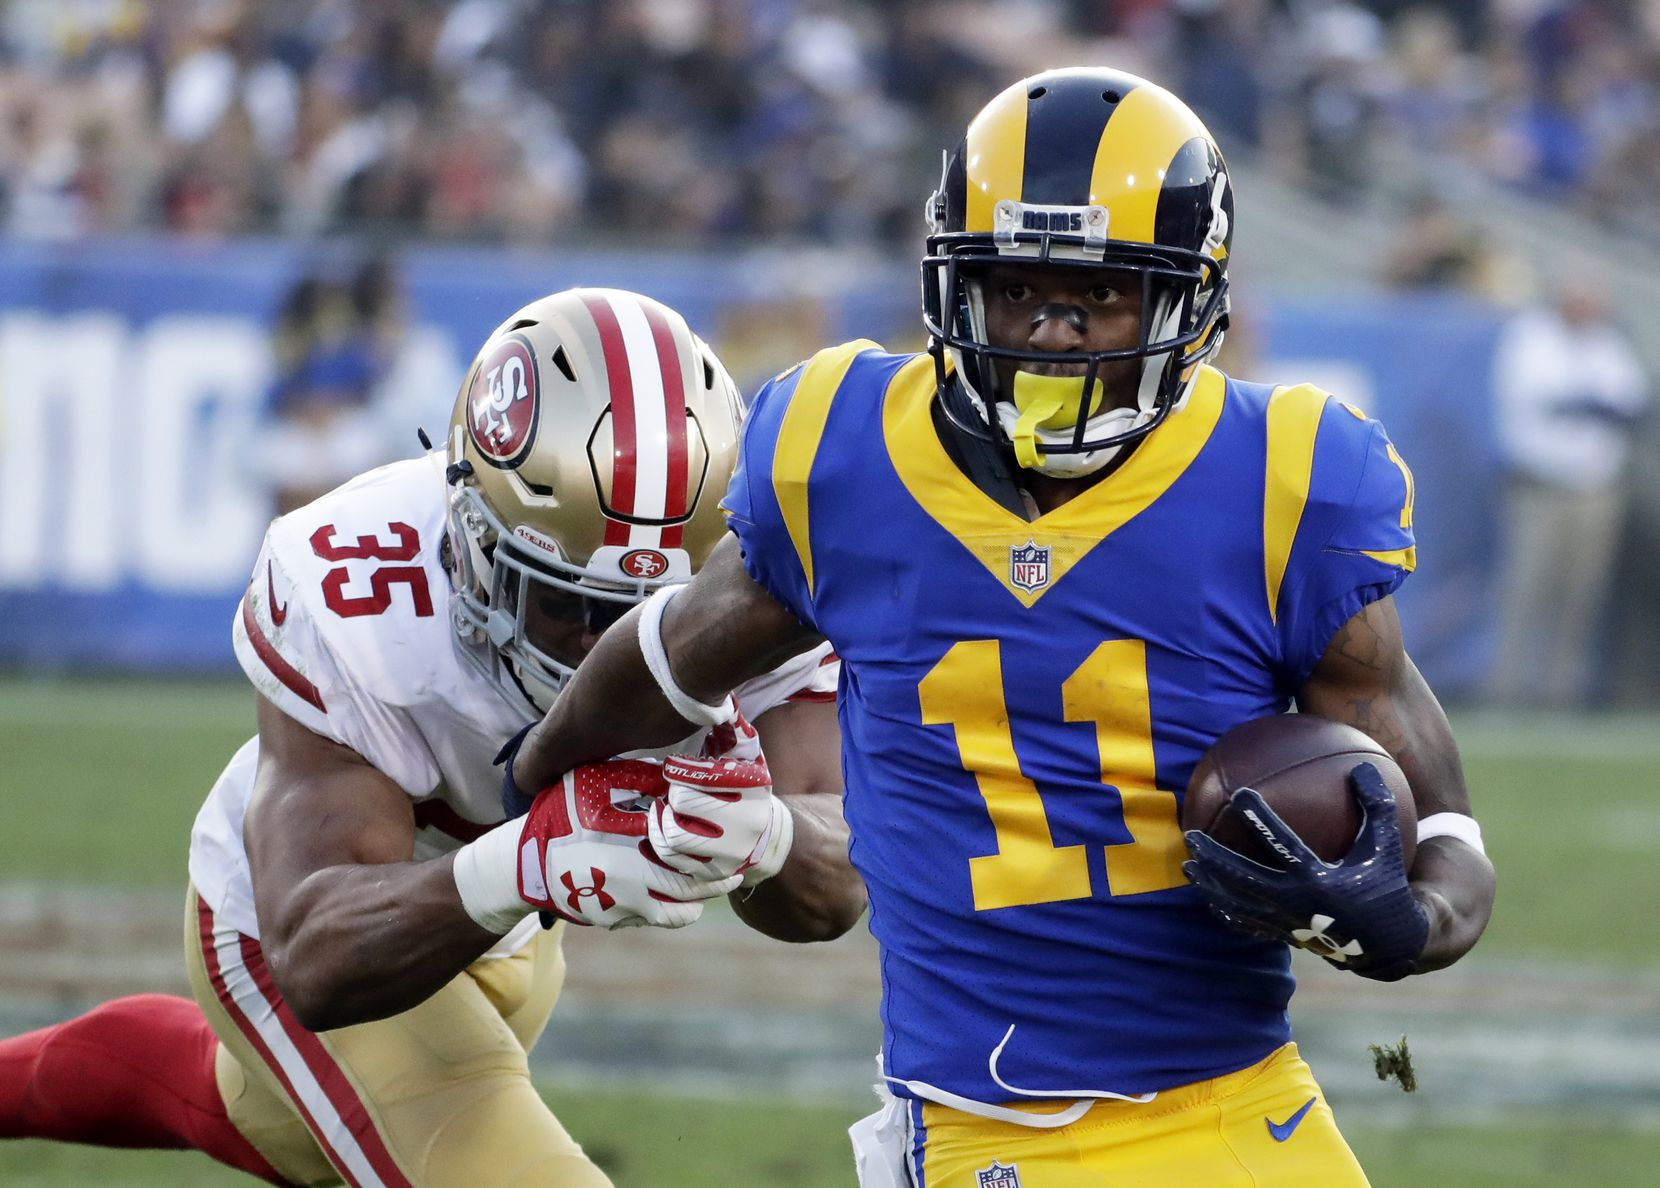 FILE - Tavon Austin (11) runs with the ball during the first half of a game against the San Francisco 49ers on Sunday, Dec. 31, 2017, in Los Angeles. (AP Photo/Rick Scuteri)